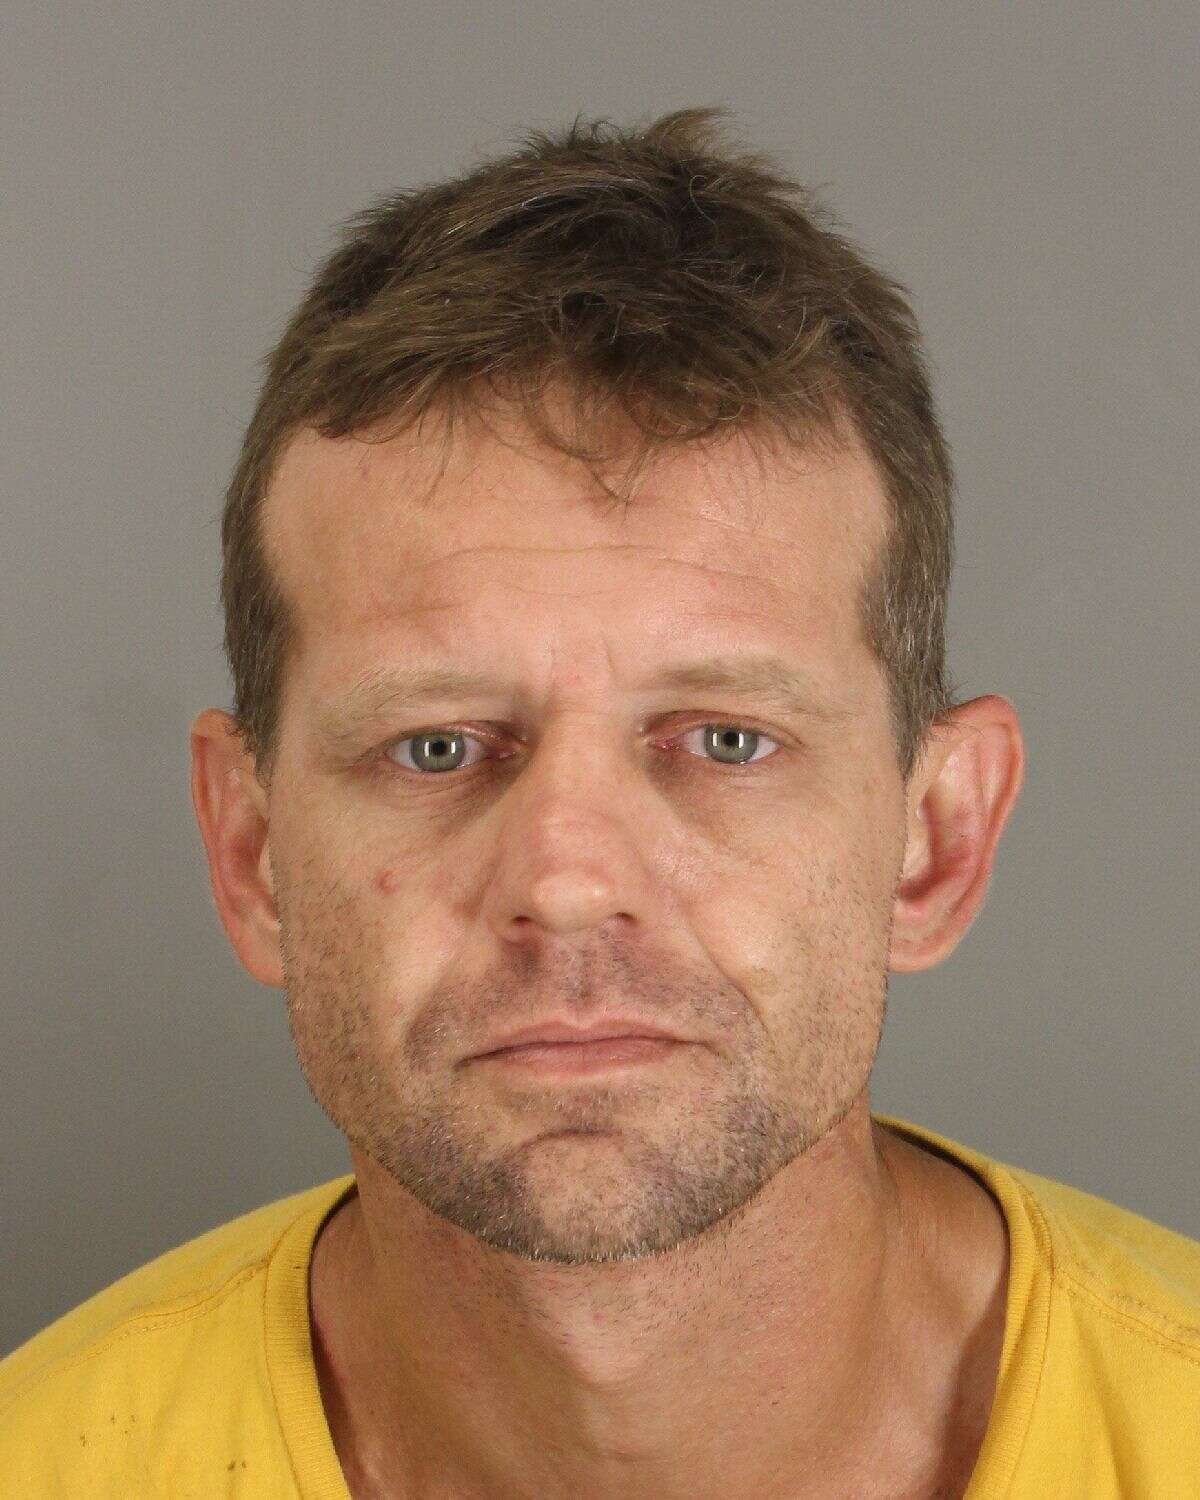 Jonathon Shawn Jones Wanted for: Two counts of felony theft Photo: Jefferson County Sheriff's Office